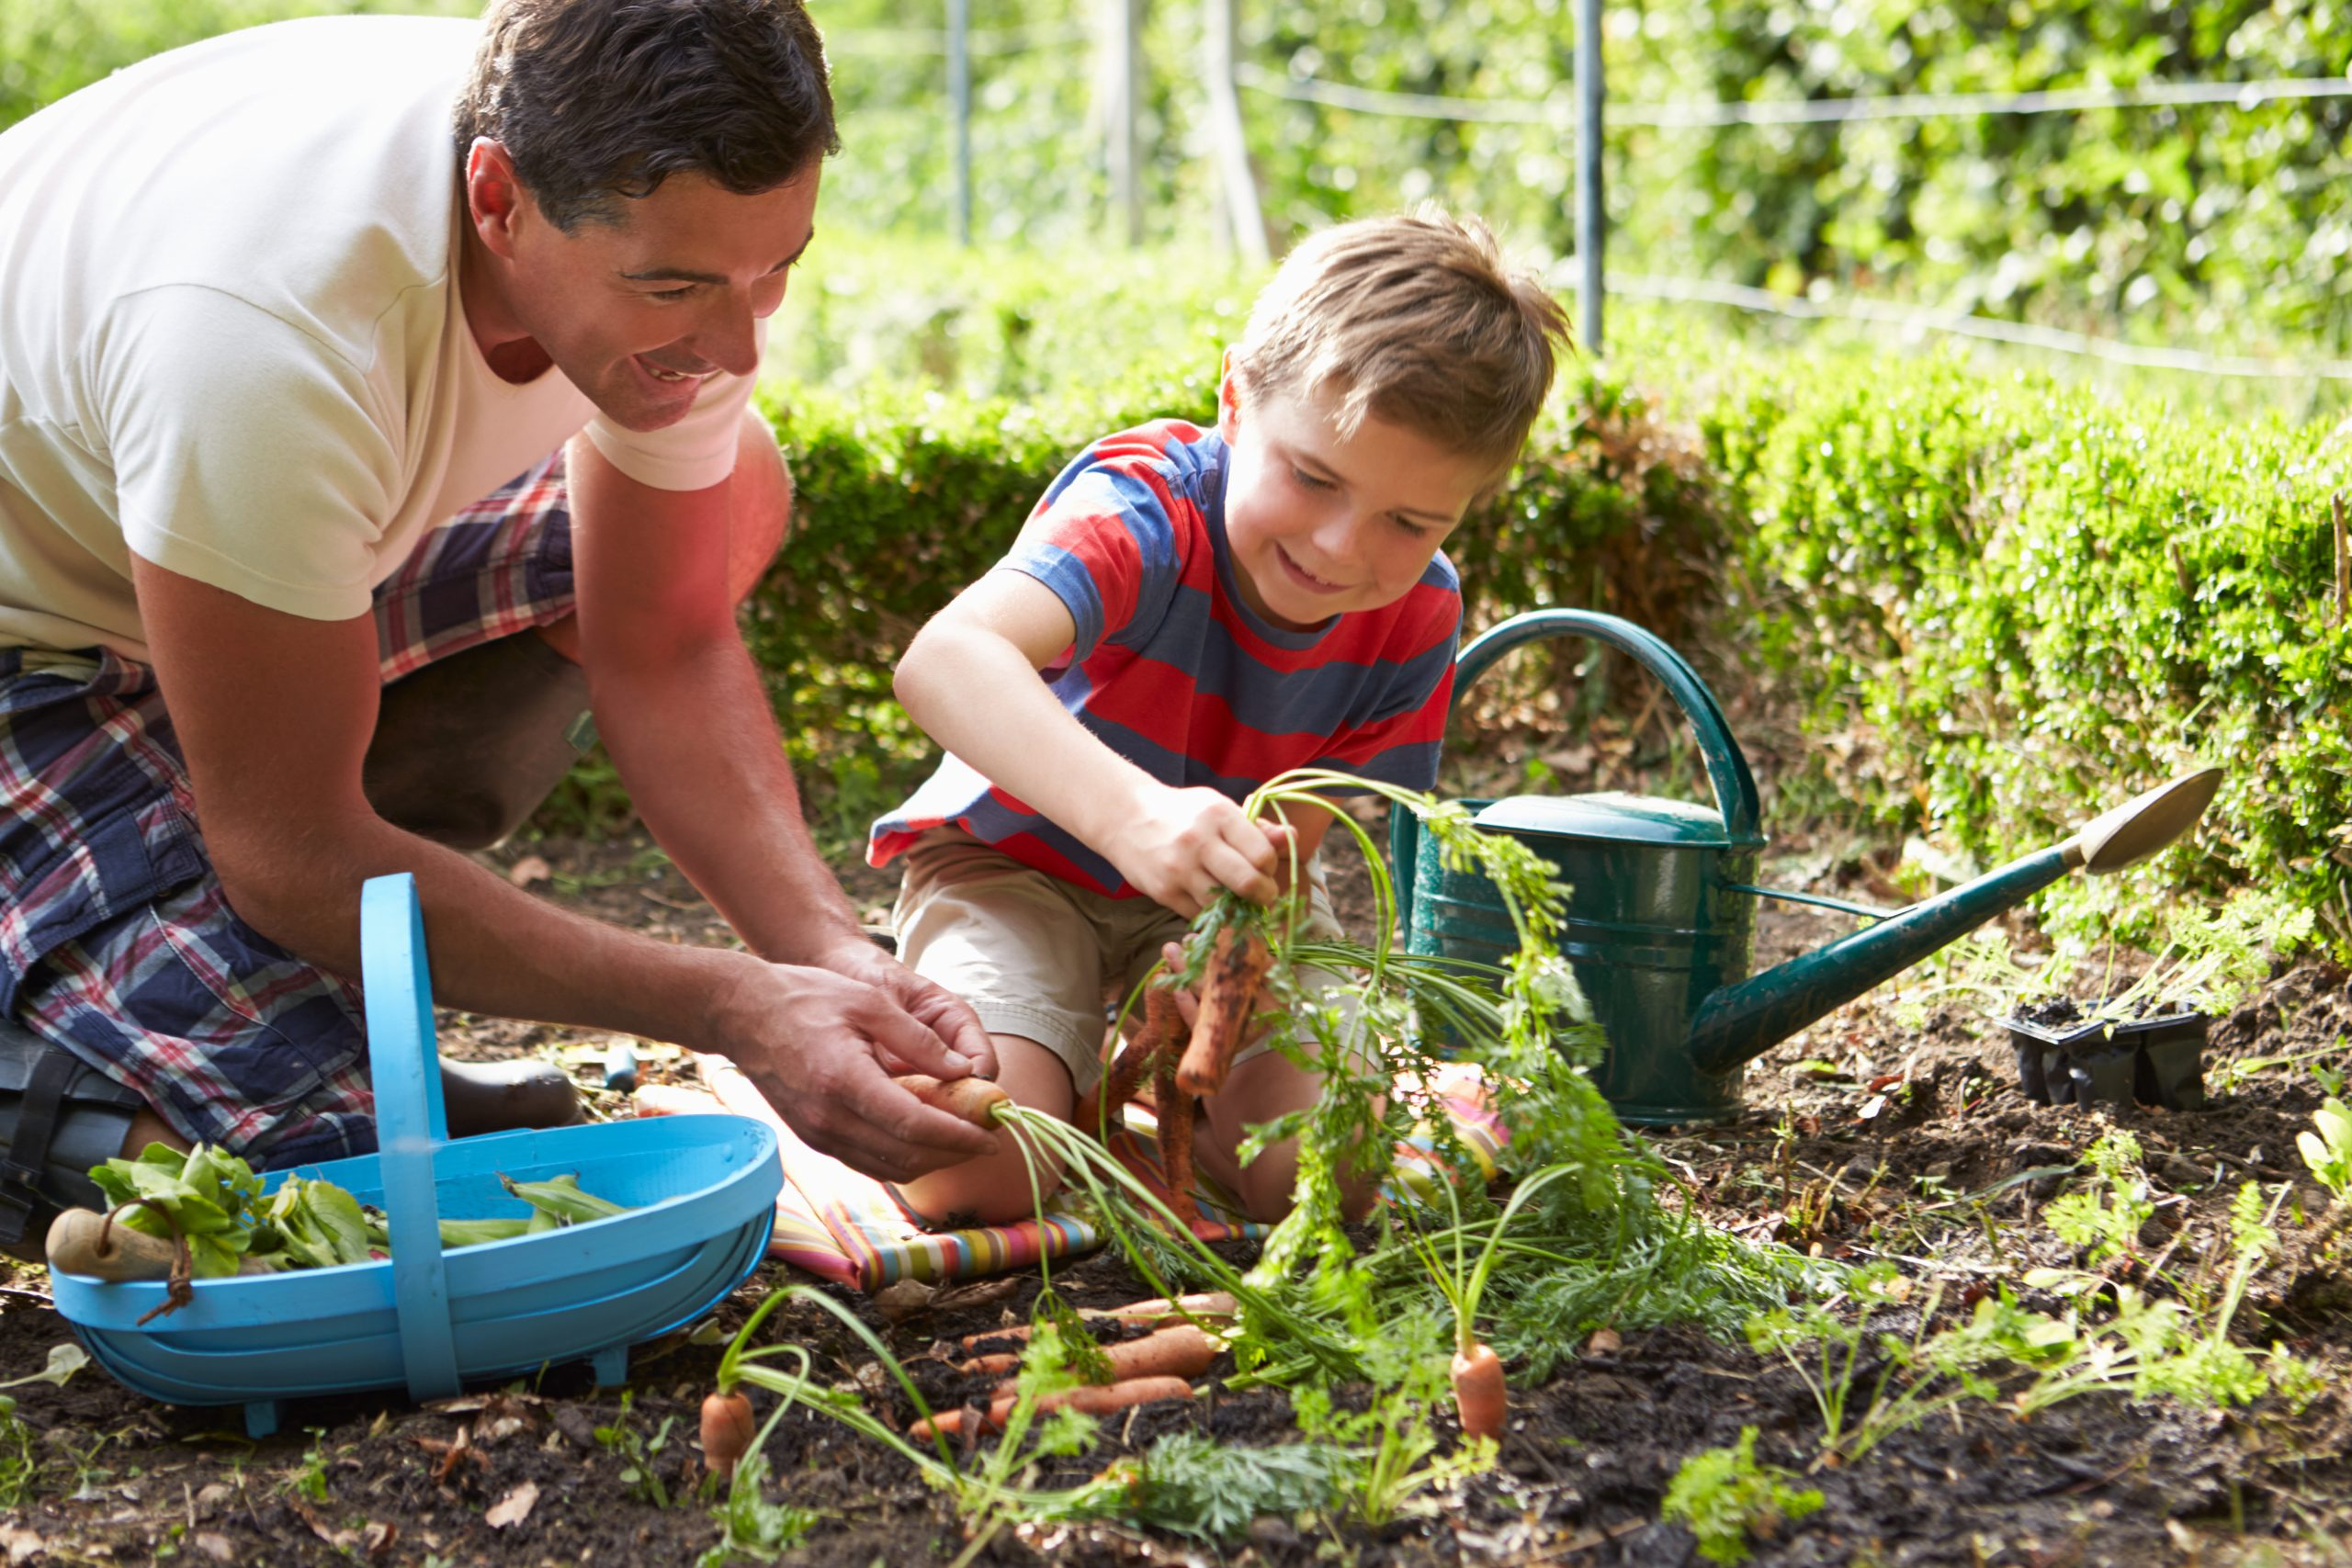 Son and Father in Garden